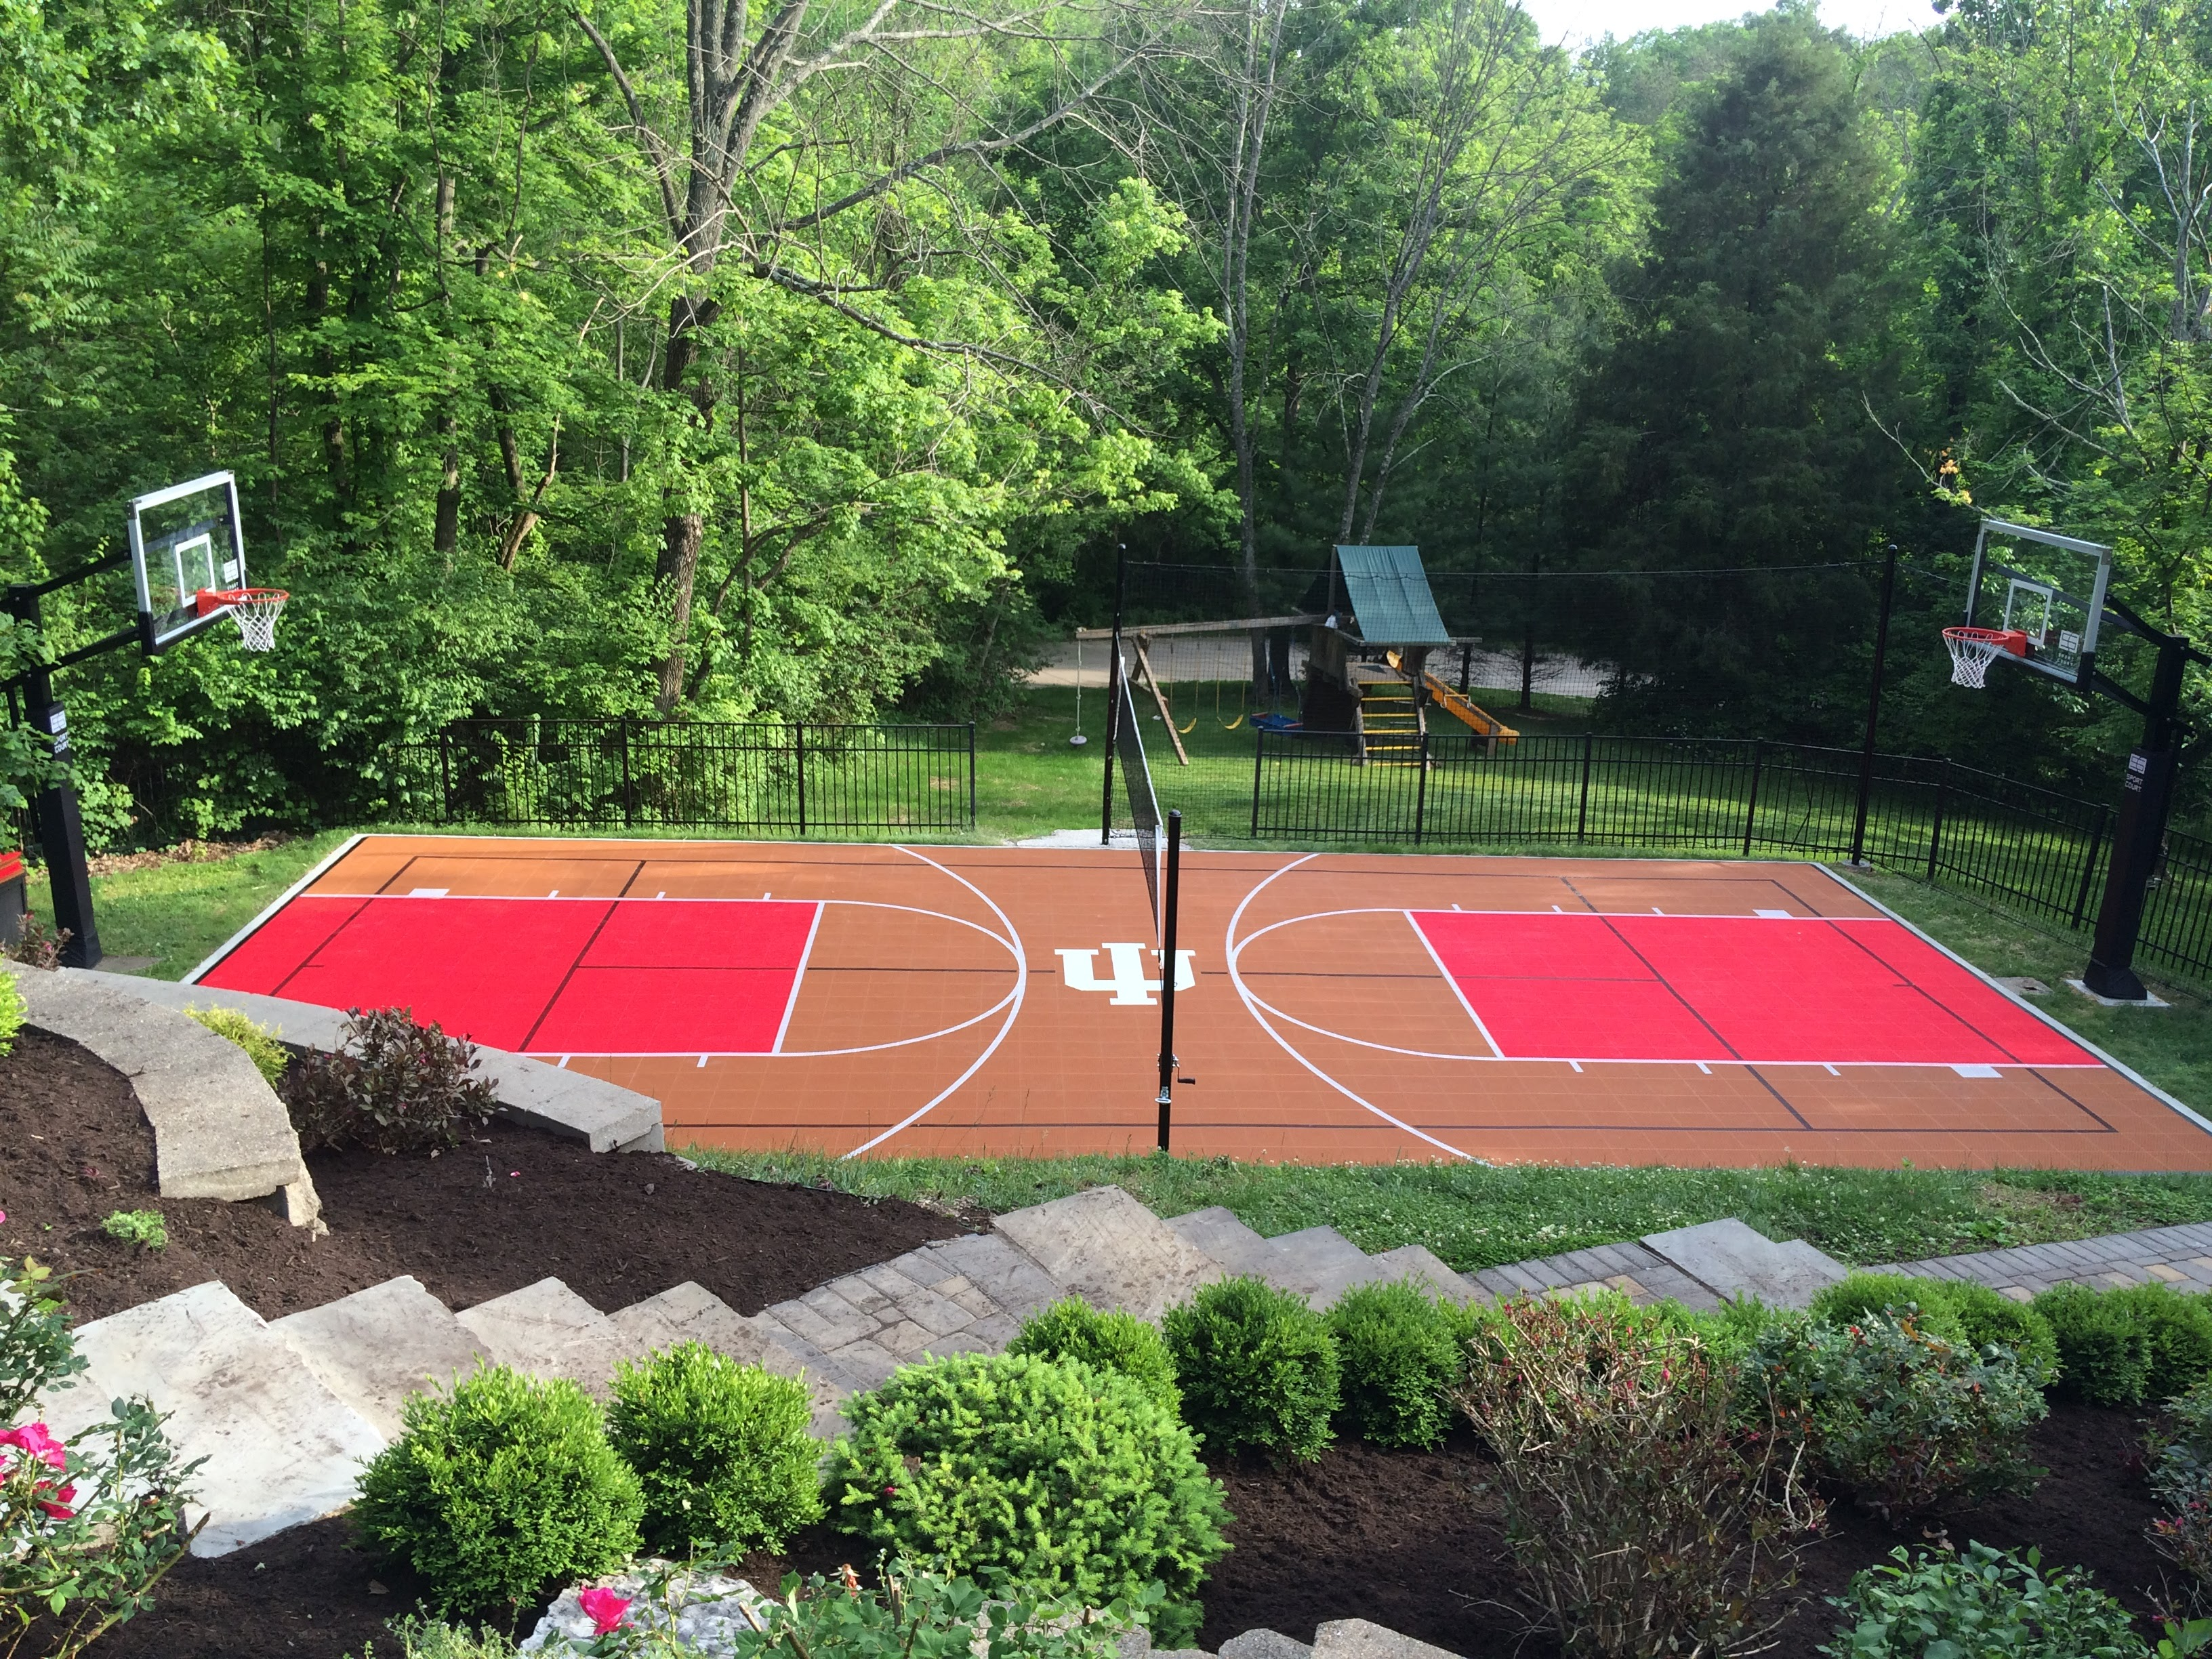 Youu0027ve Made The Exciting Decision To Install A Home Basketball Court. Now  Comes The Fun Part: Choosing Colors And A Design For Your Court.